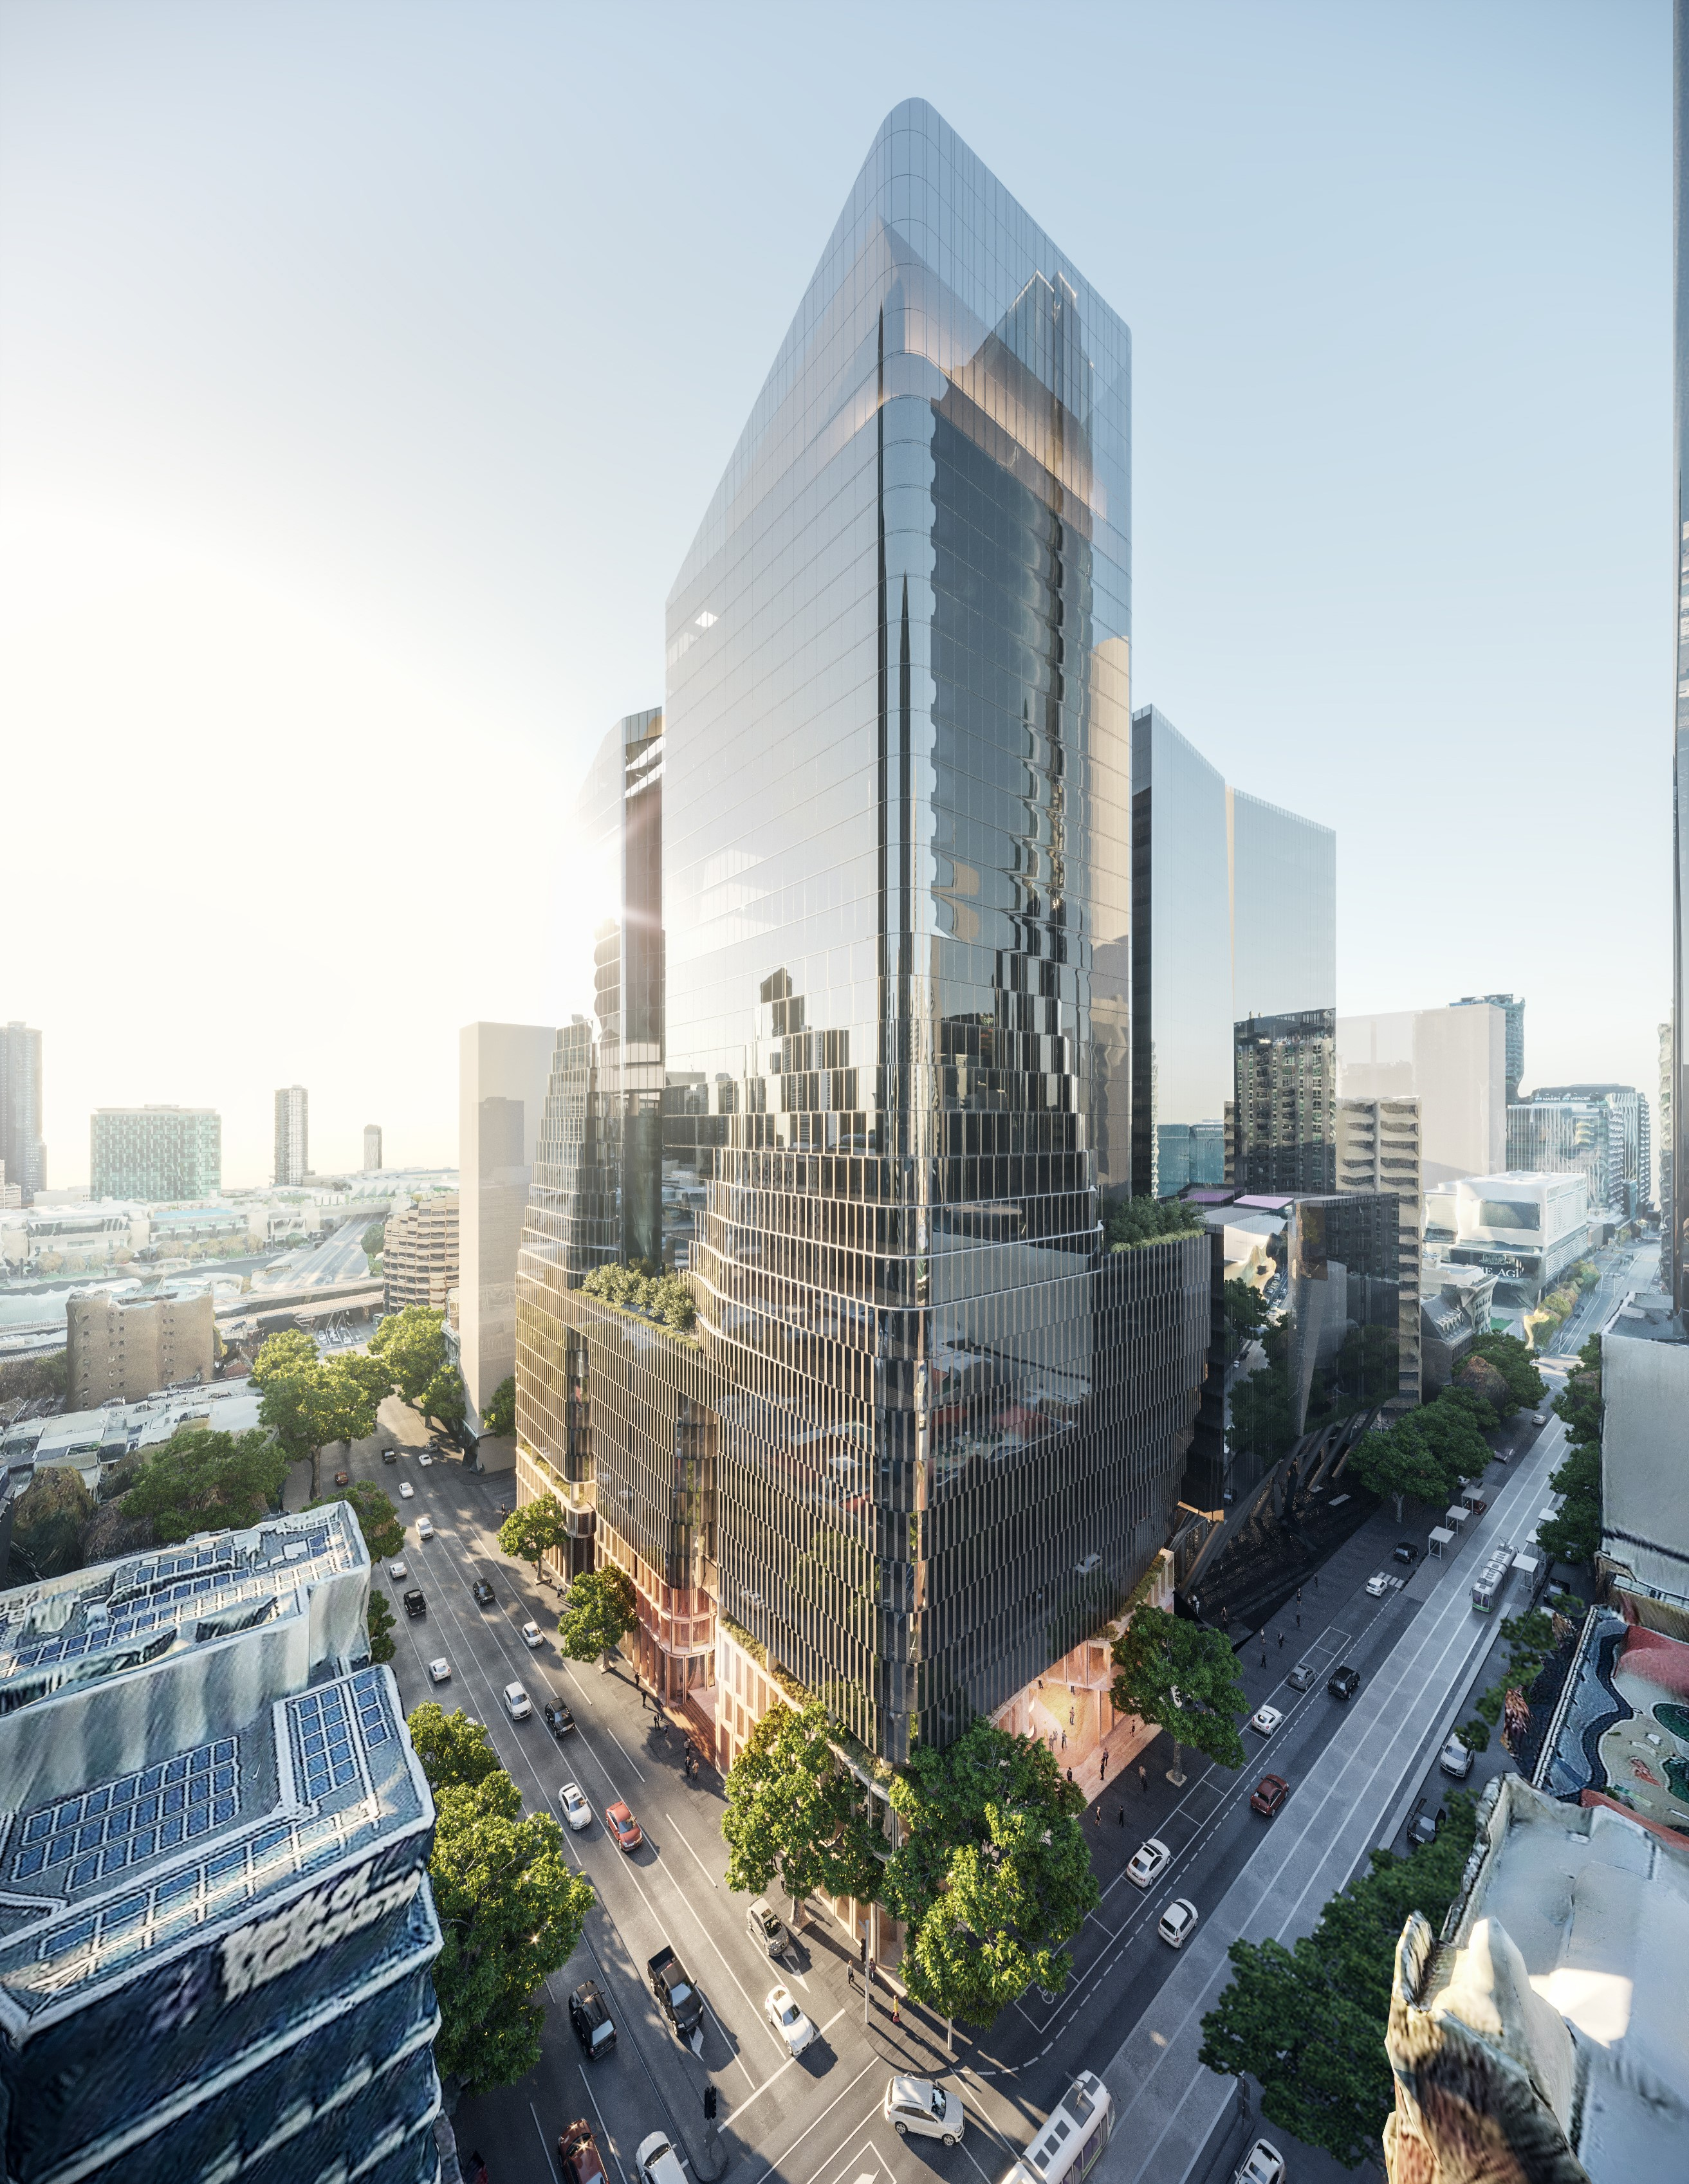 The first stage will be the 35 level tower at 555 Collins Street site. A 32-level tower on 55 King Street is part of the second stage.